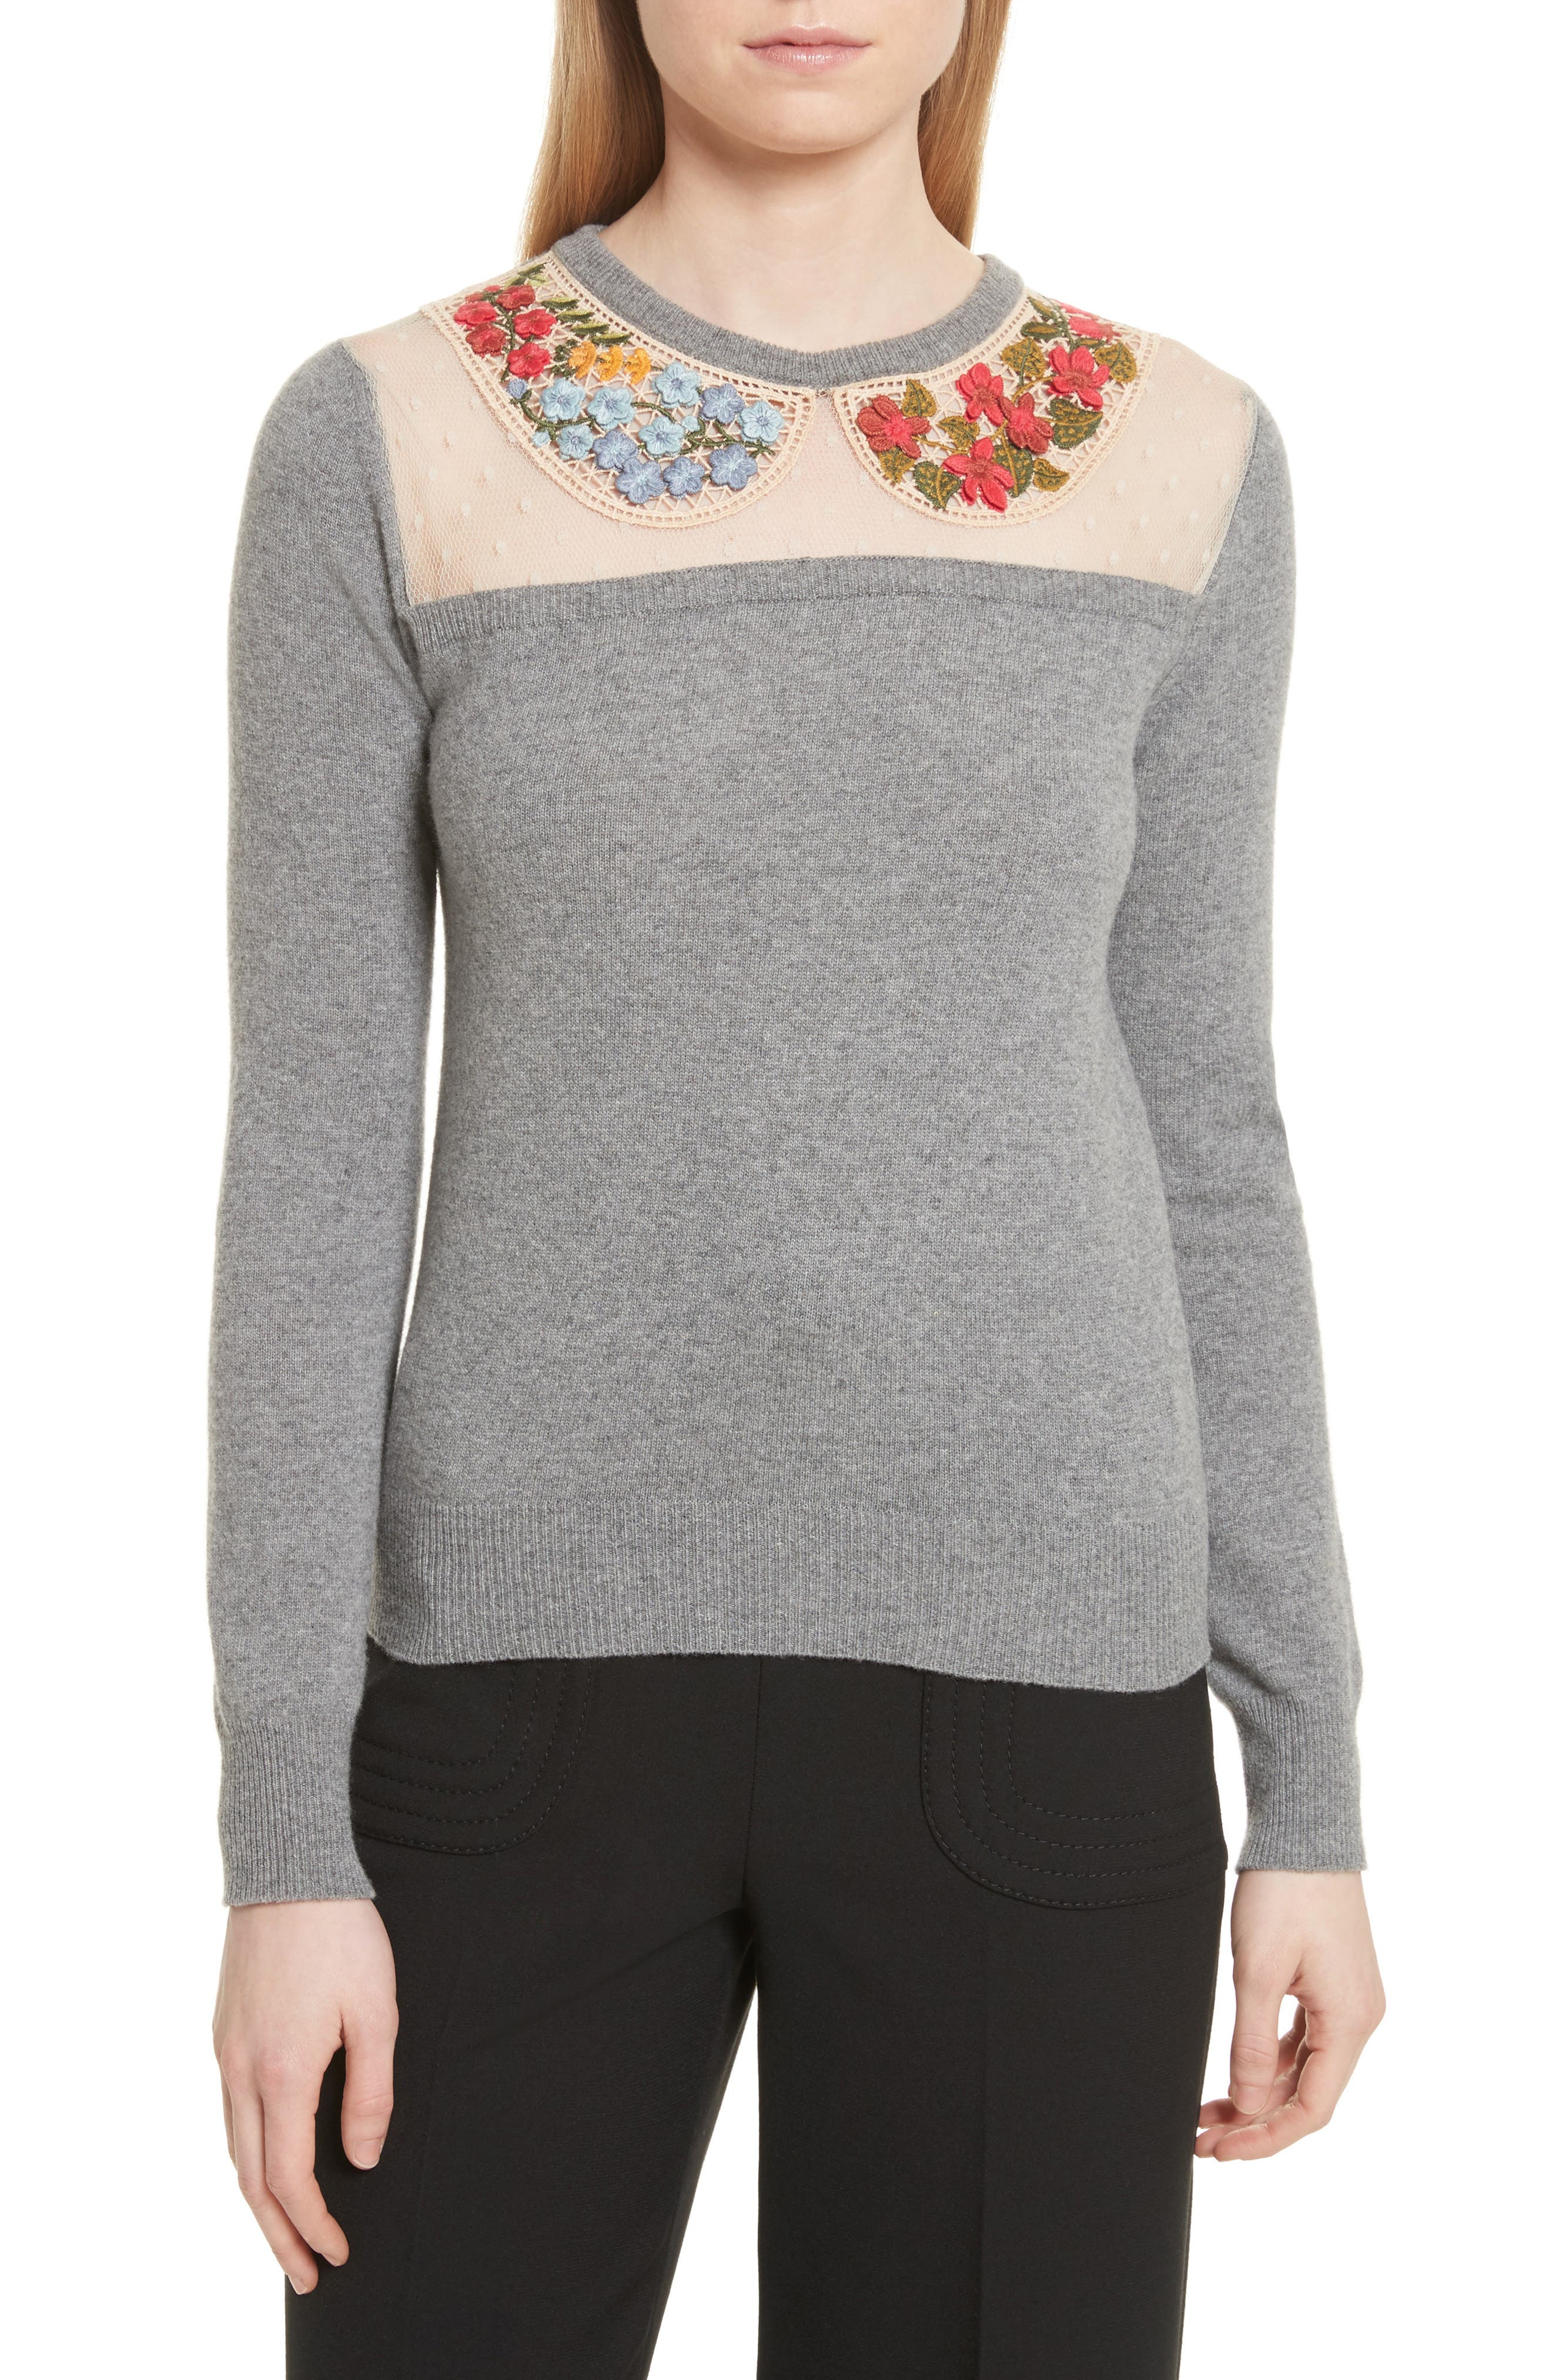 Macramé & Floral Embellished Wool Sweater,                         Main,                         color, 030